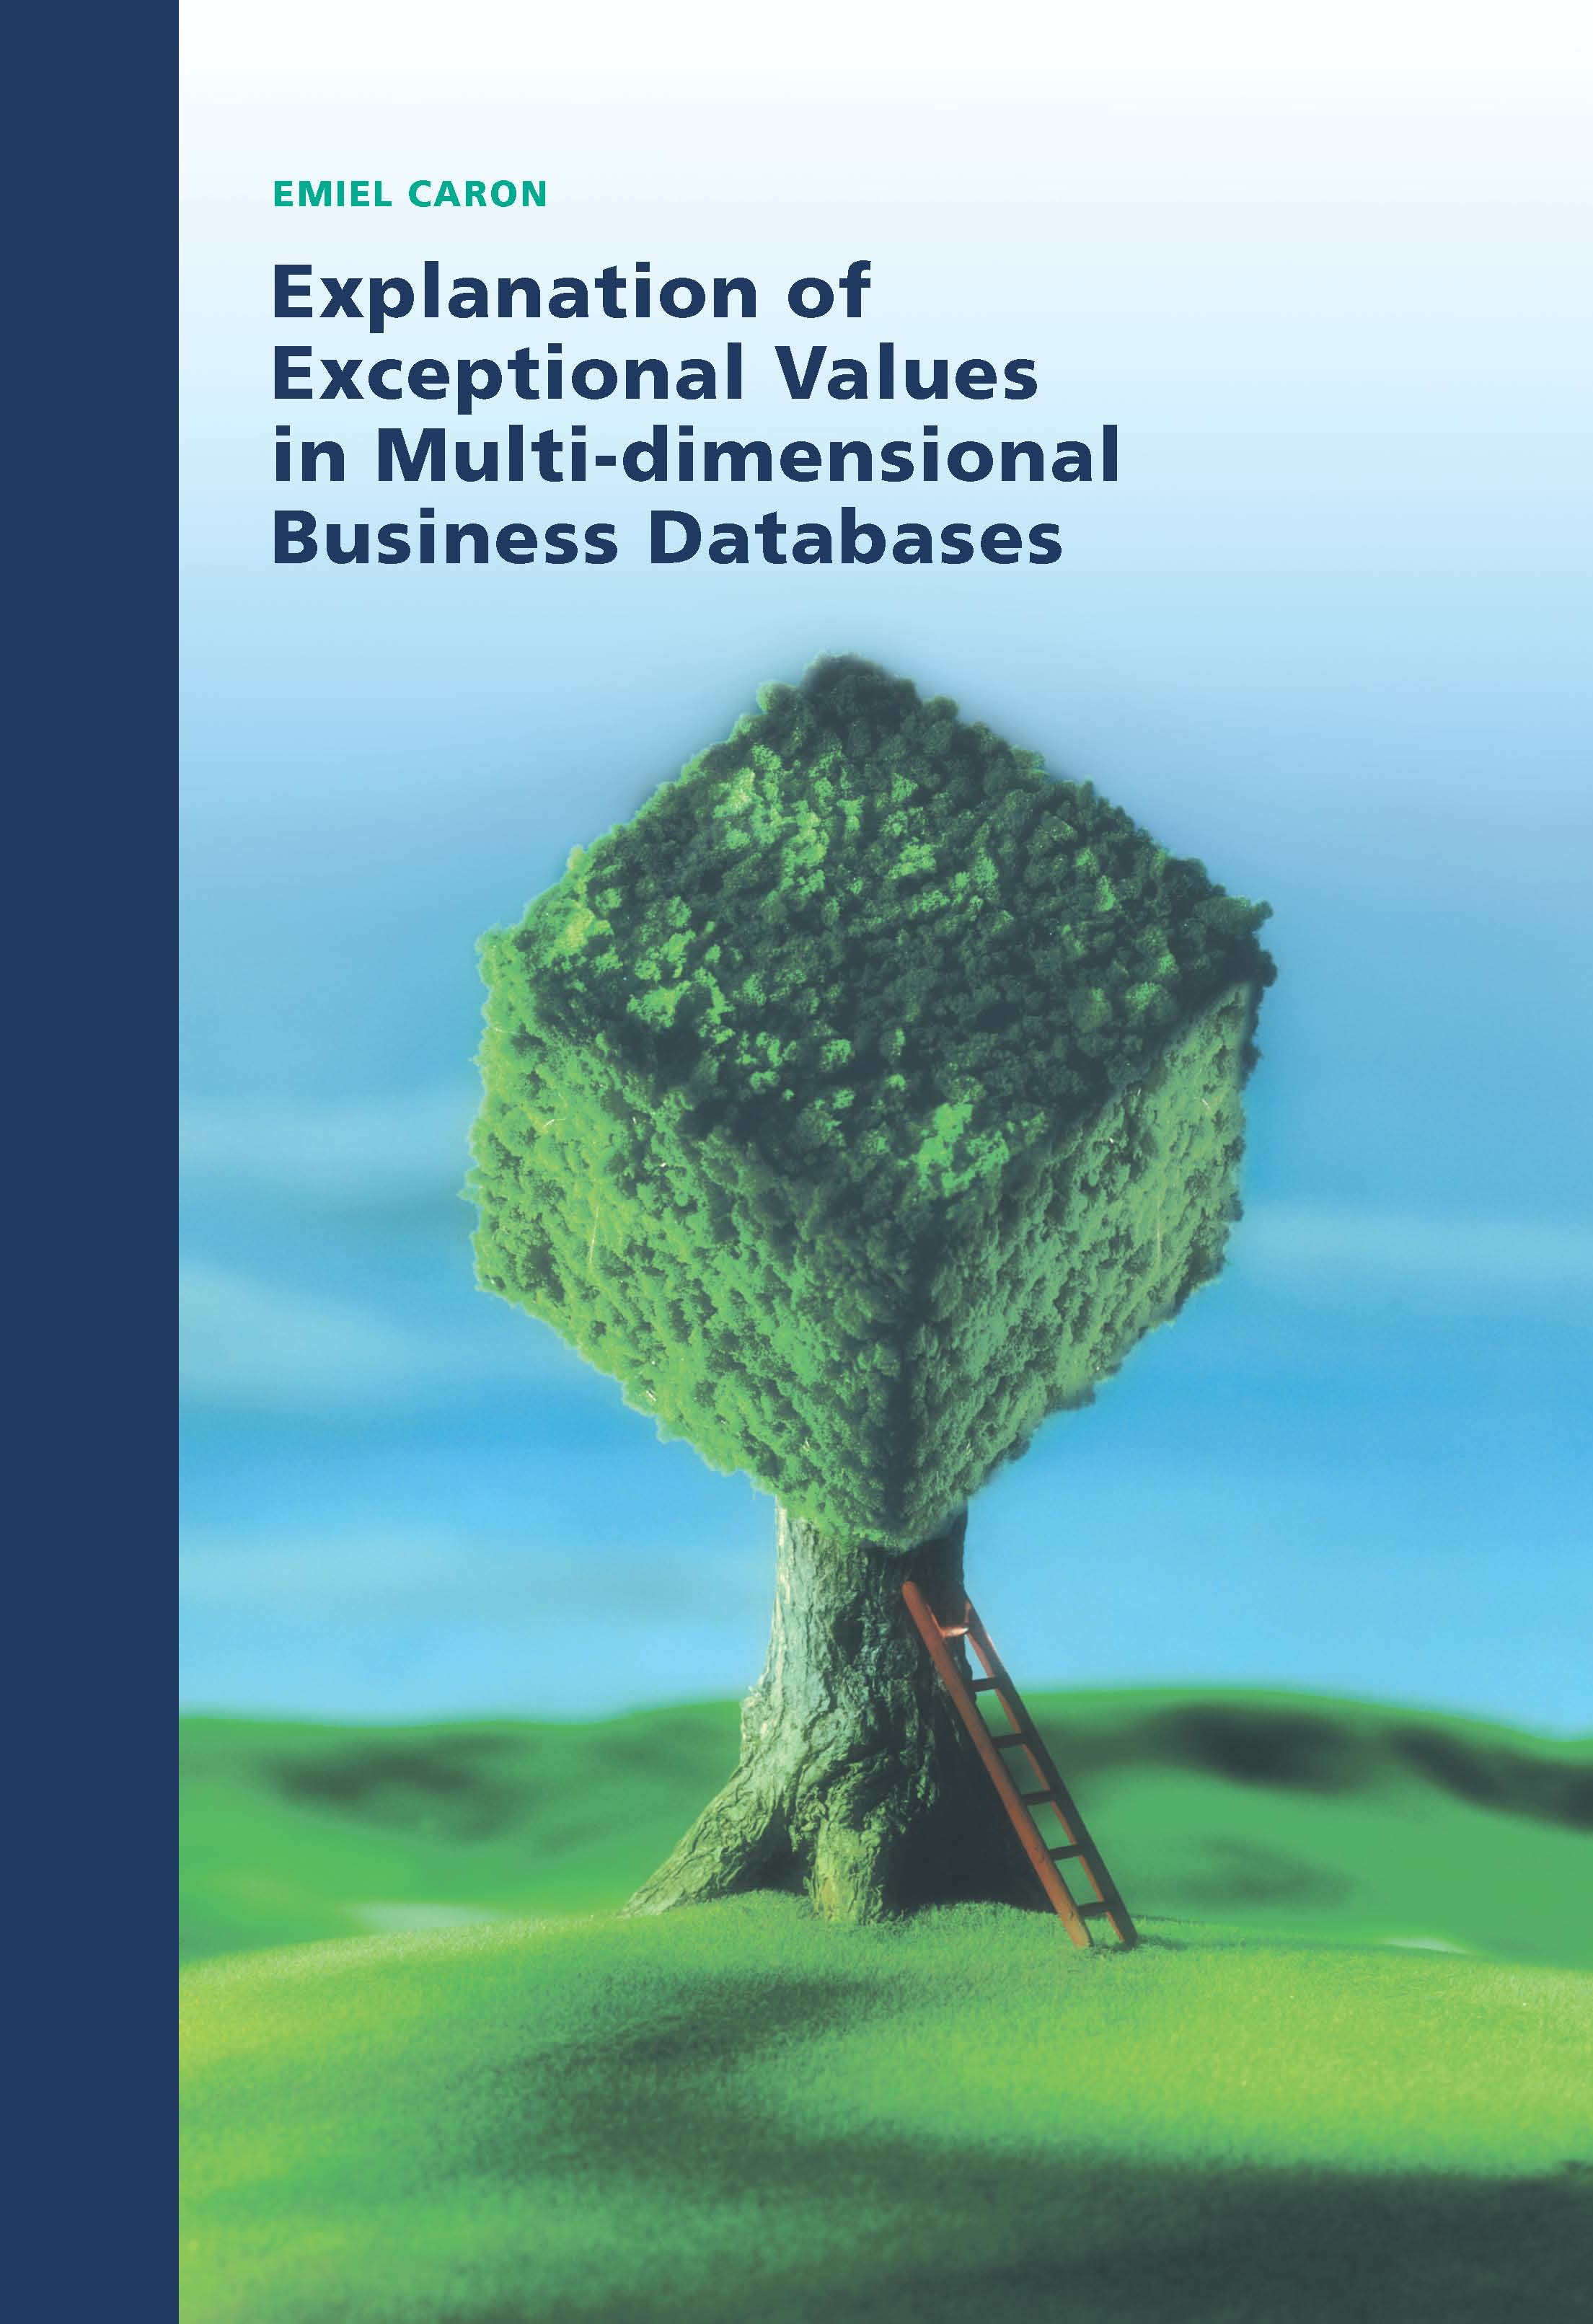 Explanation of Exceptional Values in Multi-dimensional Business Databases